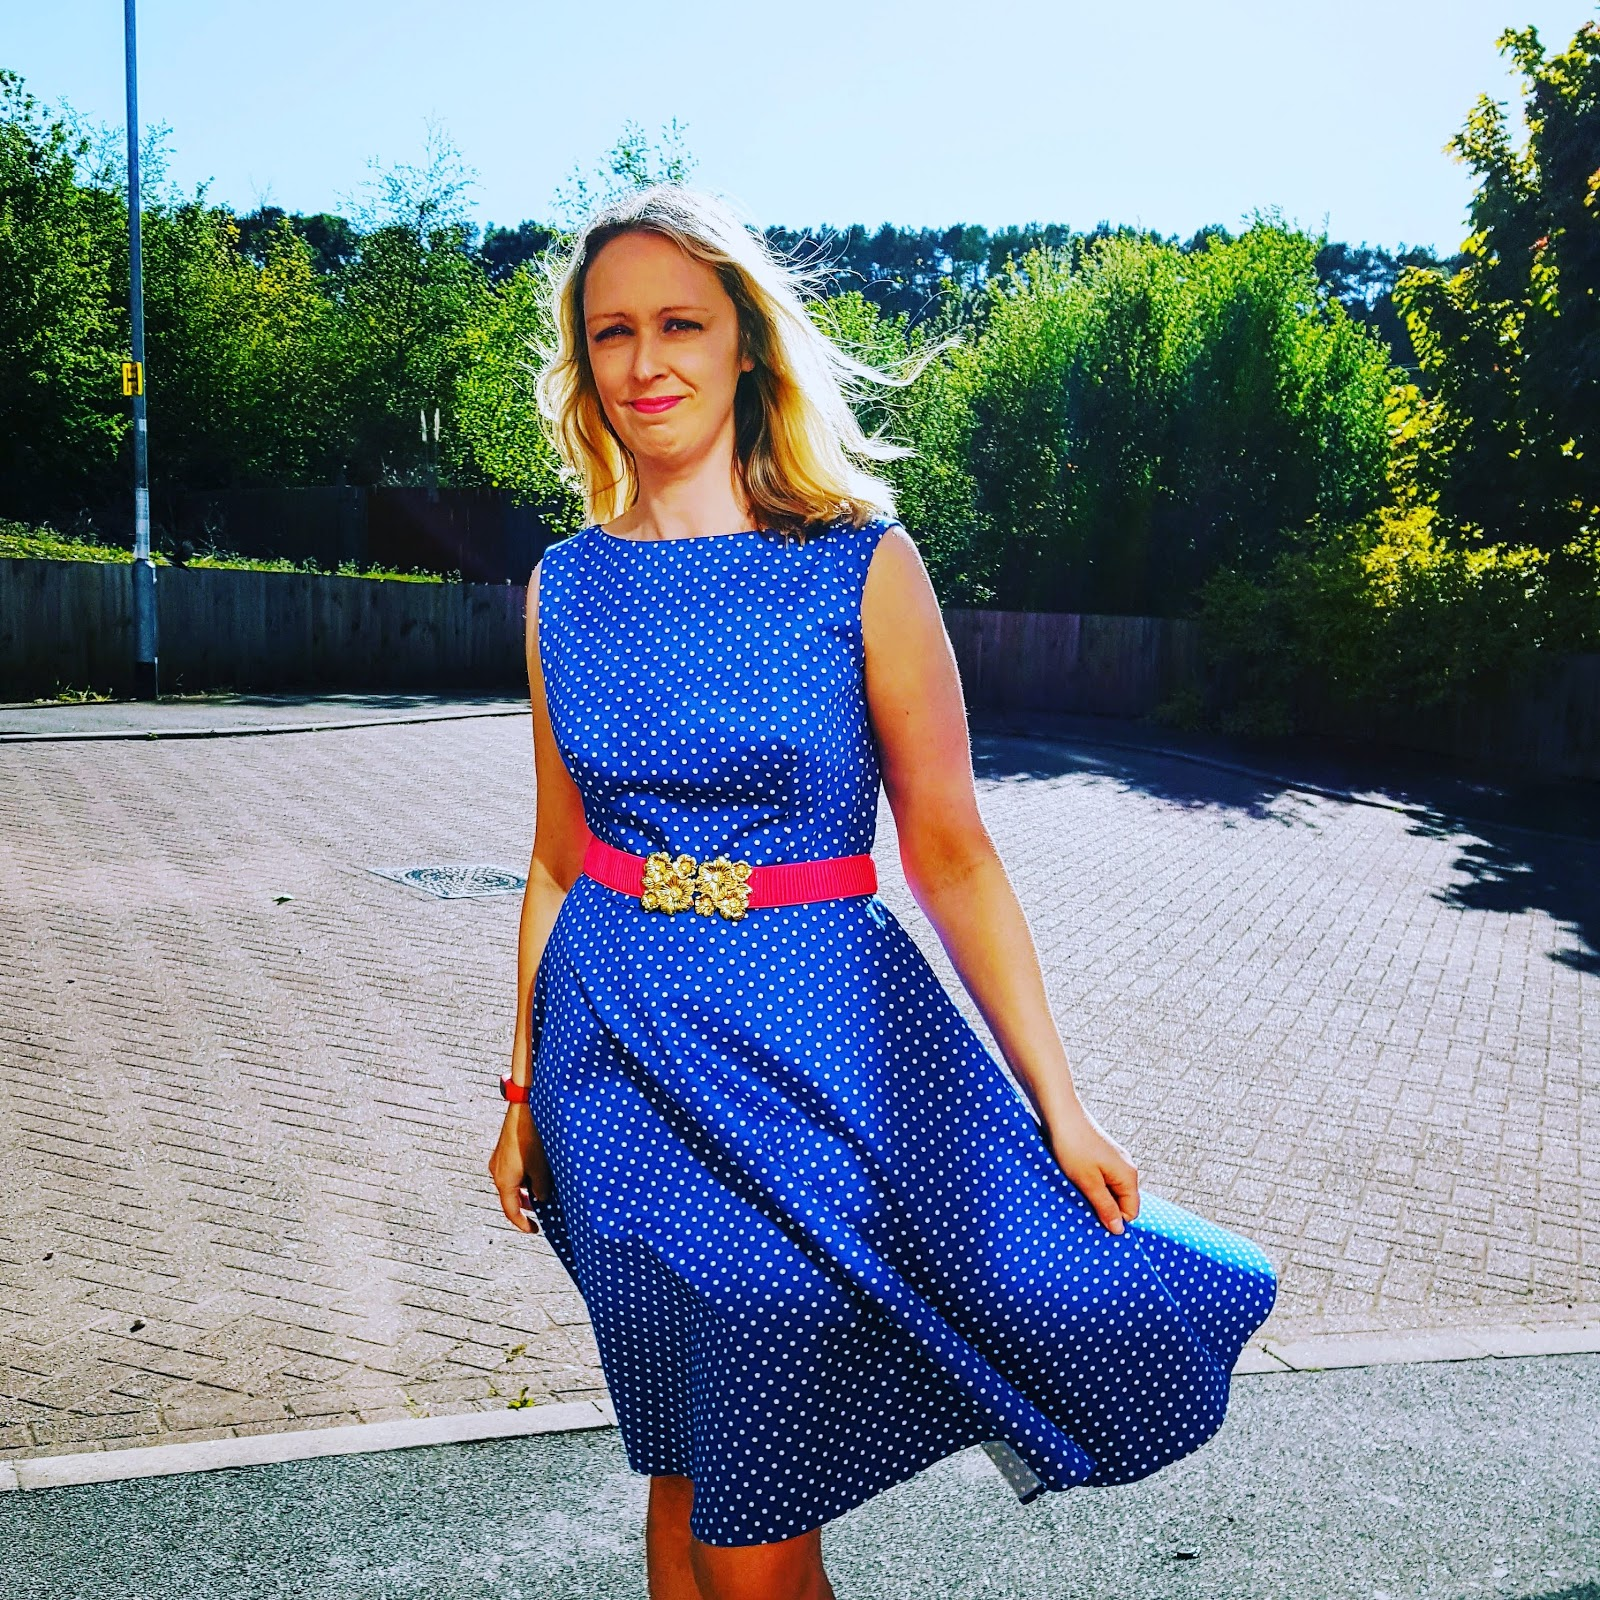 Favourite Blue Dress For Blue Dress Day